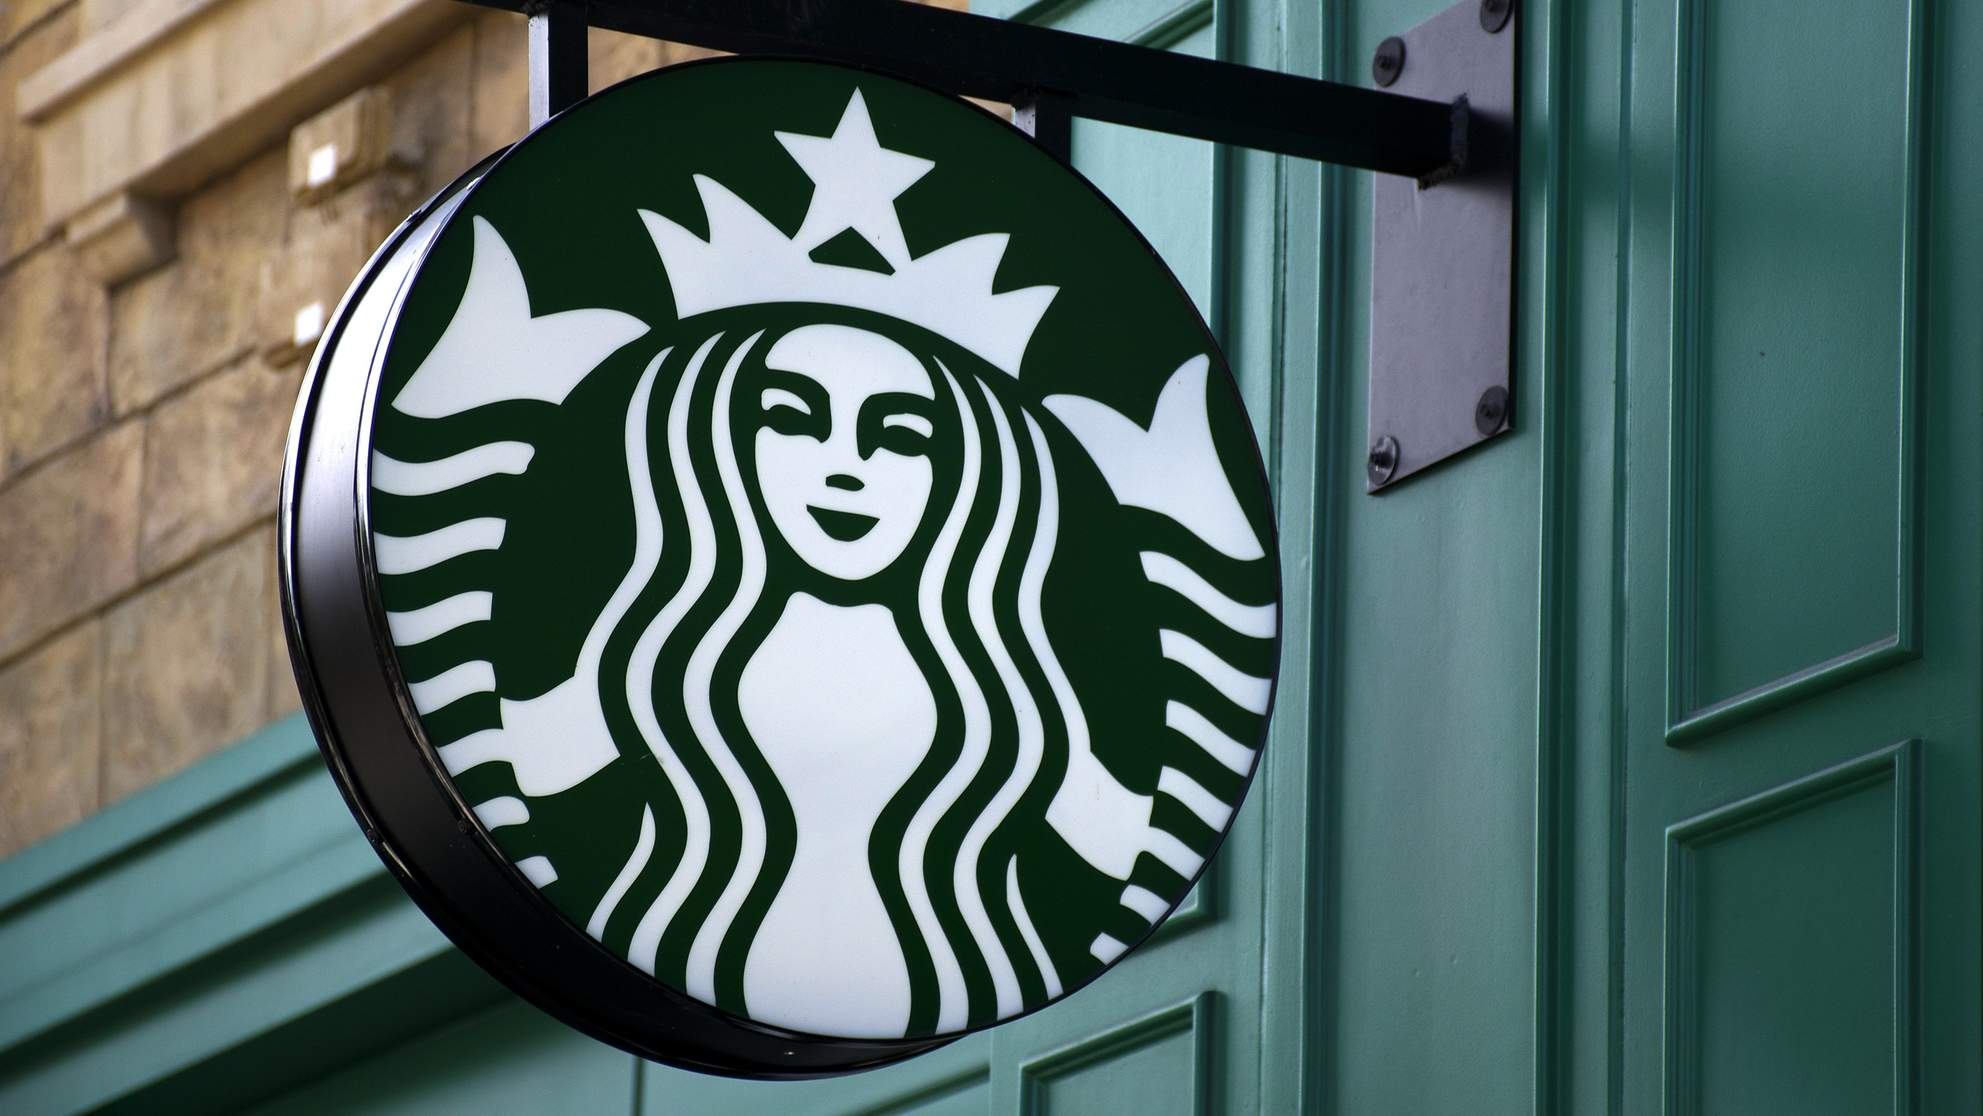 starbucks-logo-sign